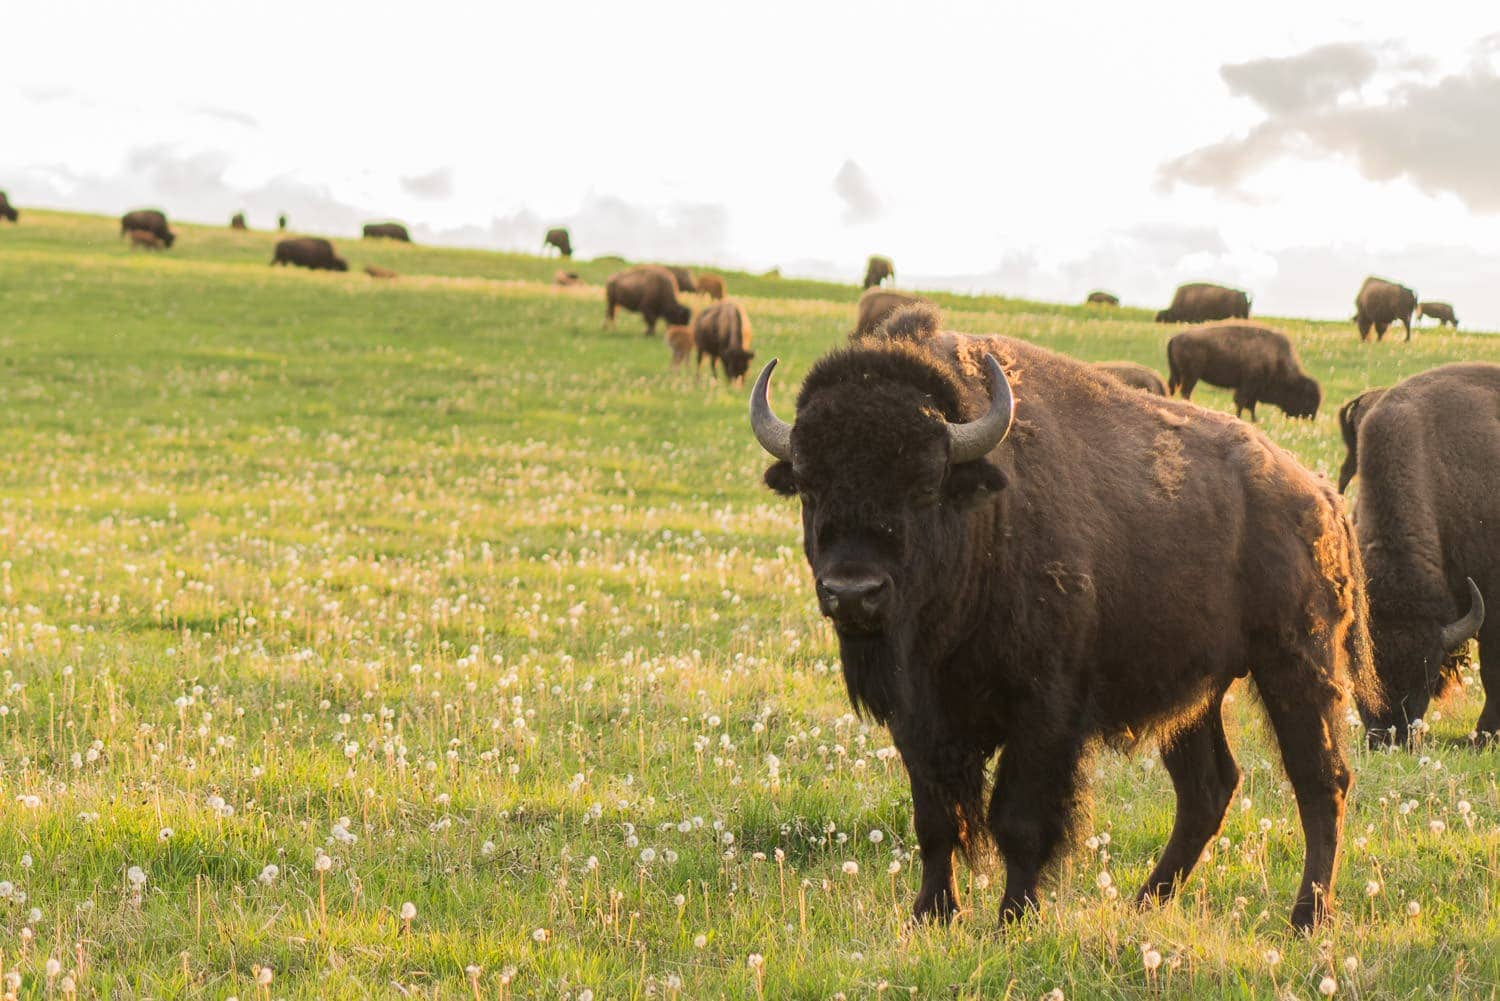 bison grazing in Alberta, Canada, leave no trace principles protect wildlife